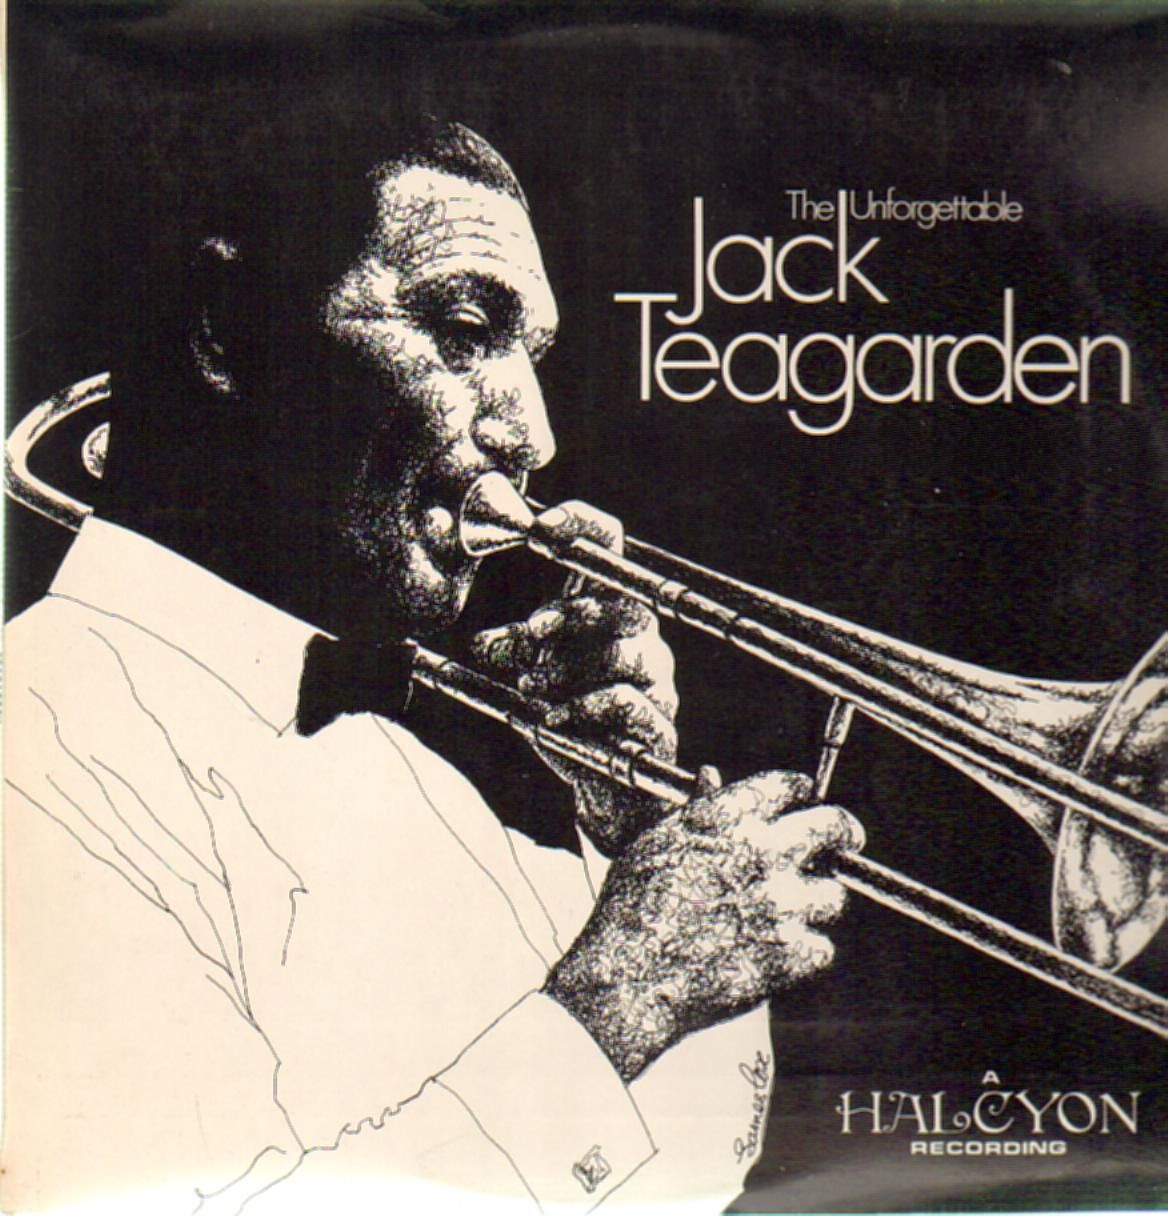 JACK TEAGARDEN - The Unforgettable Jack Teagarden cover